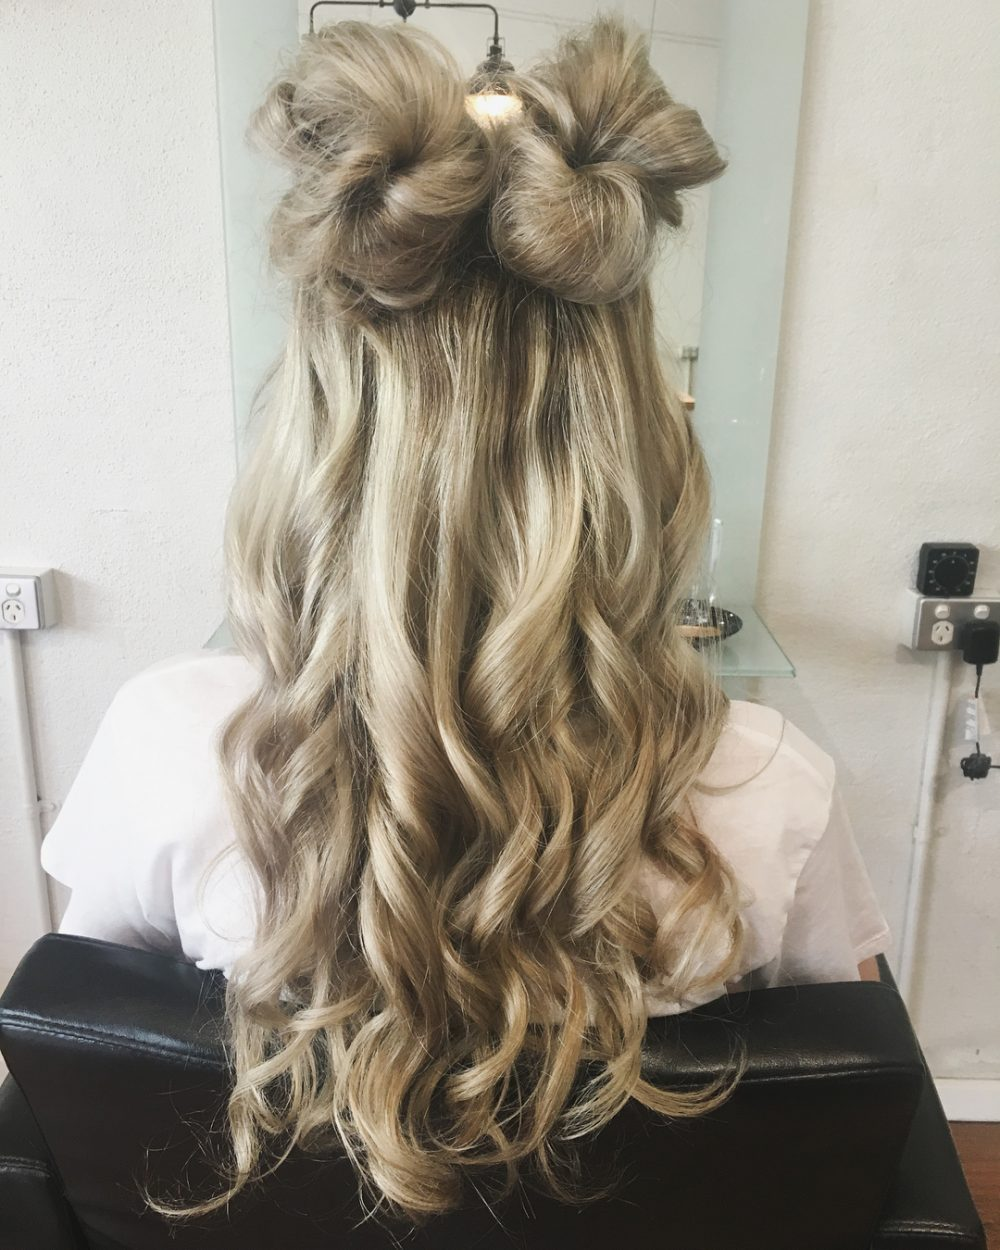 Instagram hairmakeupbycarlax 38 Ridiculously Cute Hairstyles for